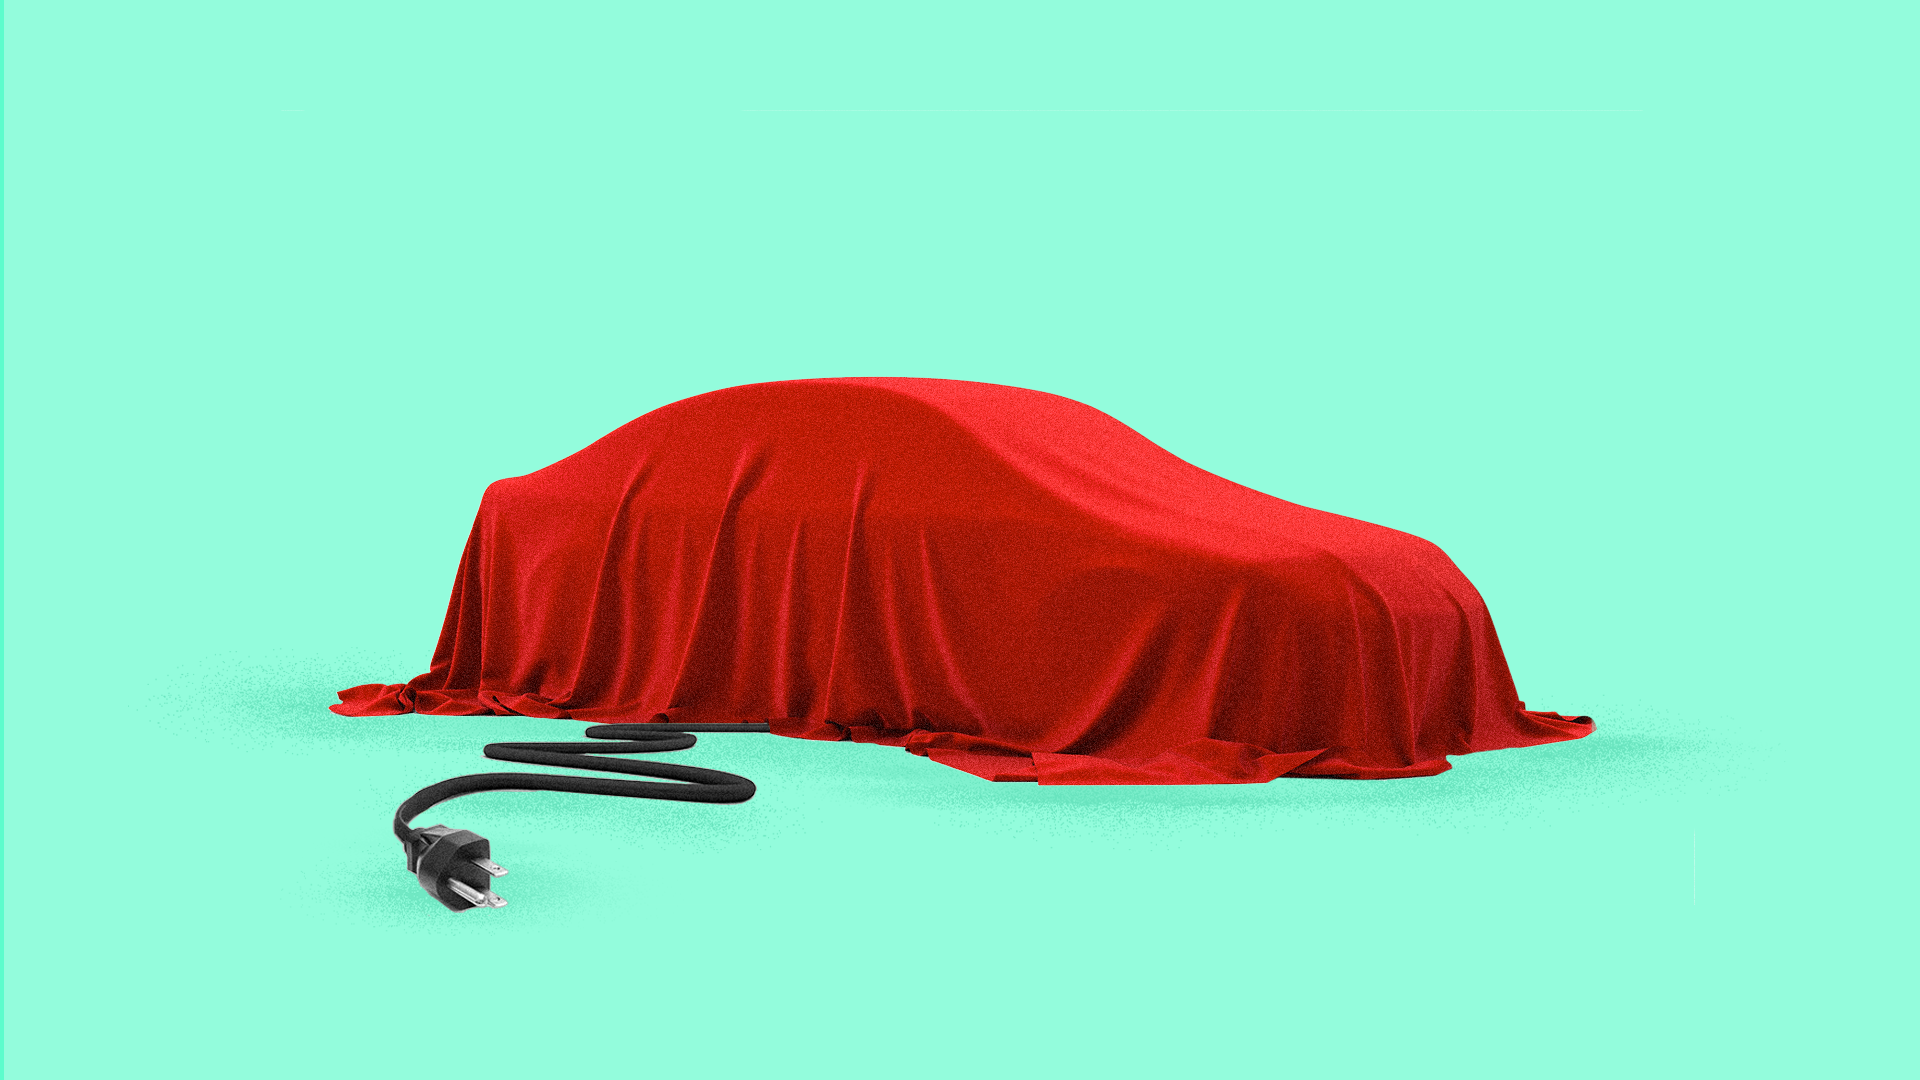 Illustration of a car under a red blanket with a plug.